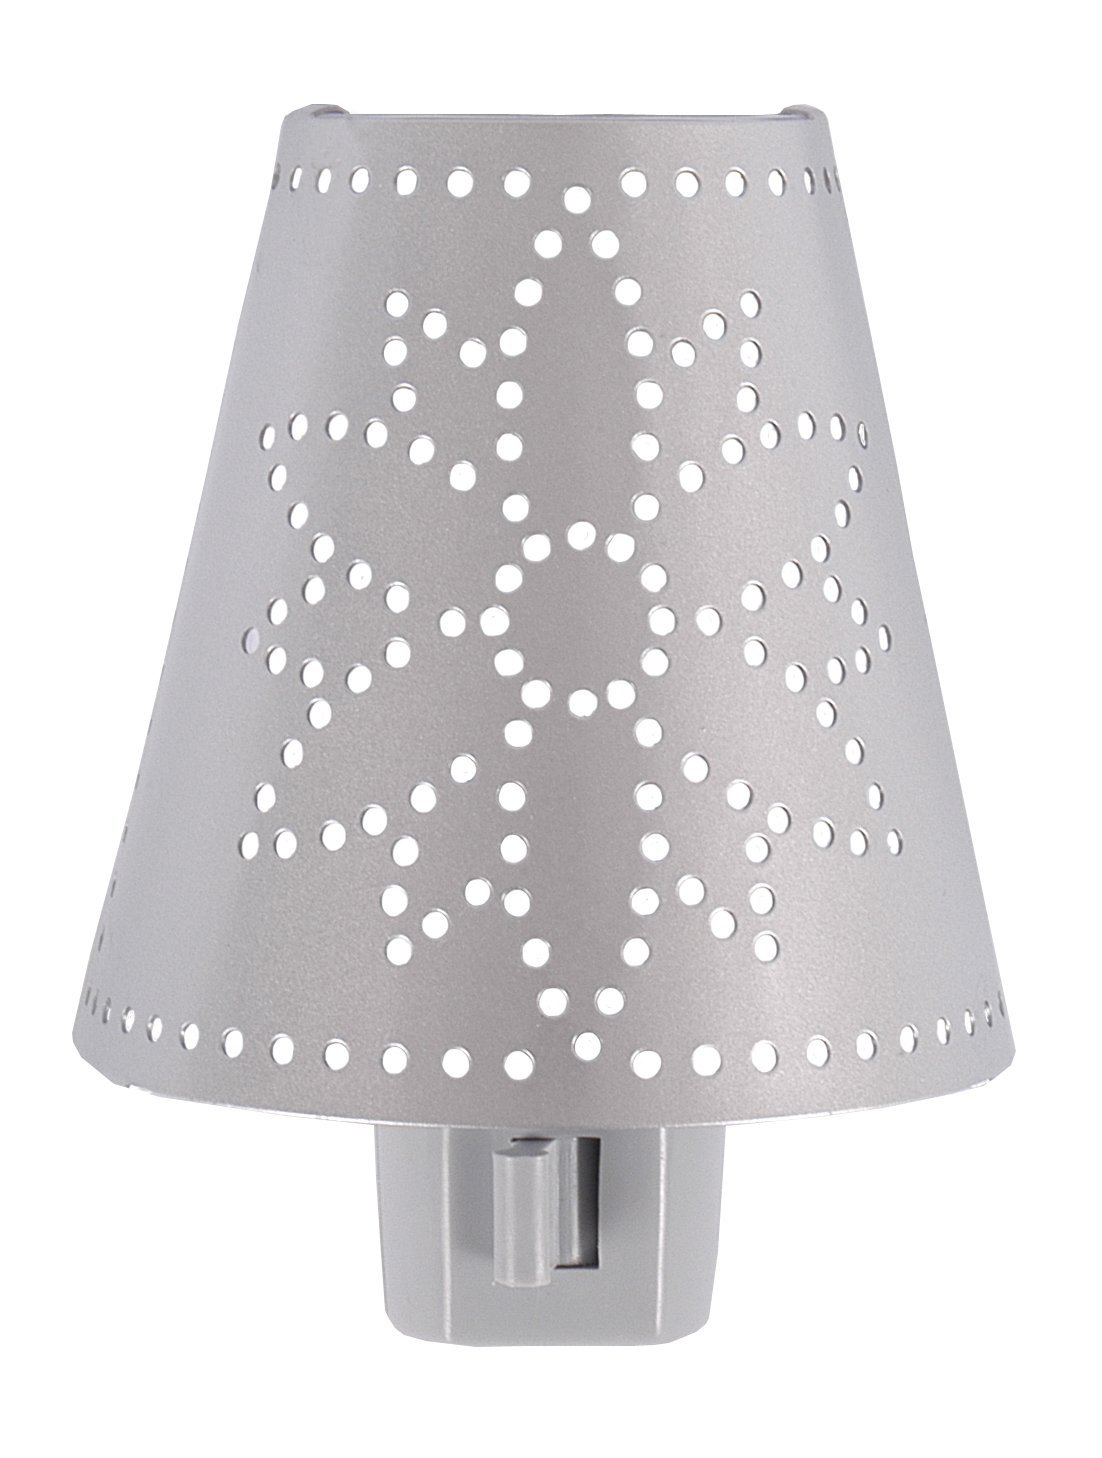 GE Metal Shade With Flower Design Incandescent Night Light 51386 by GE